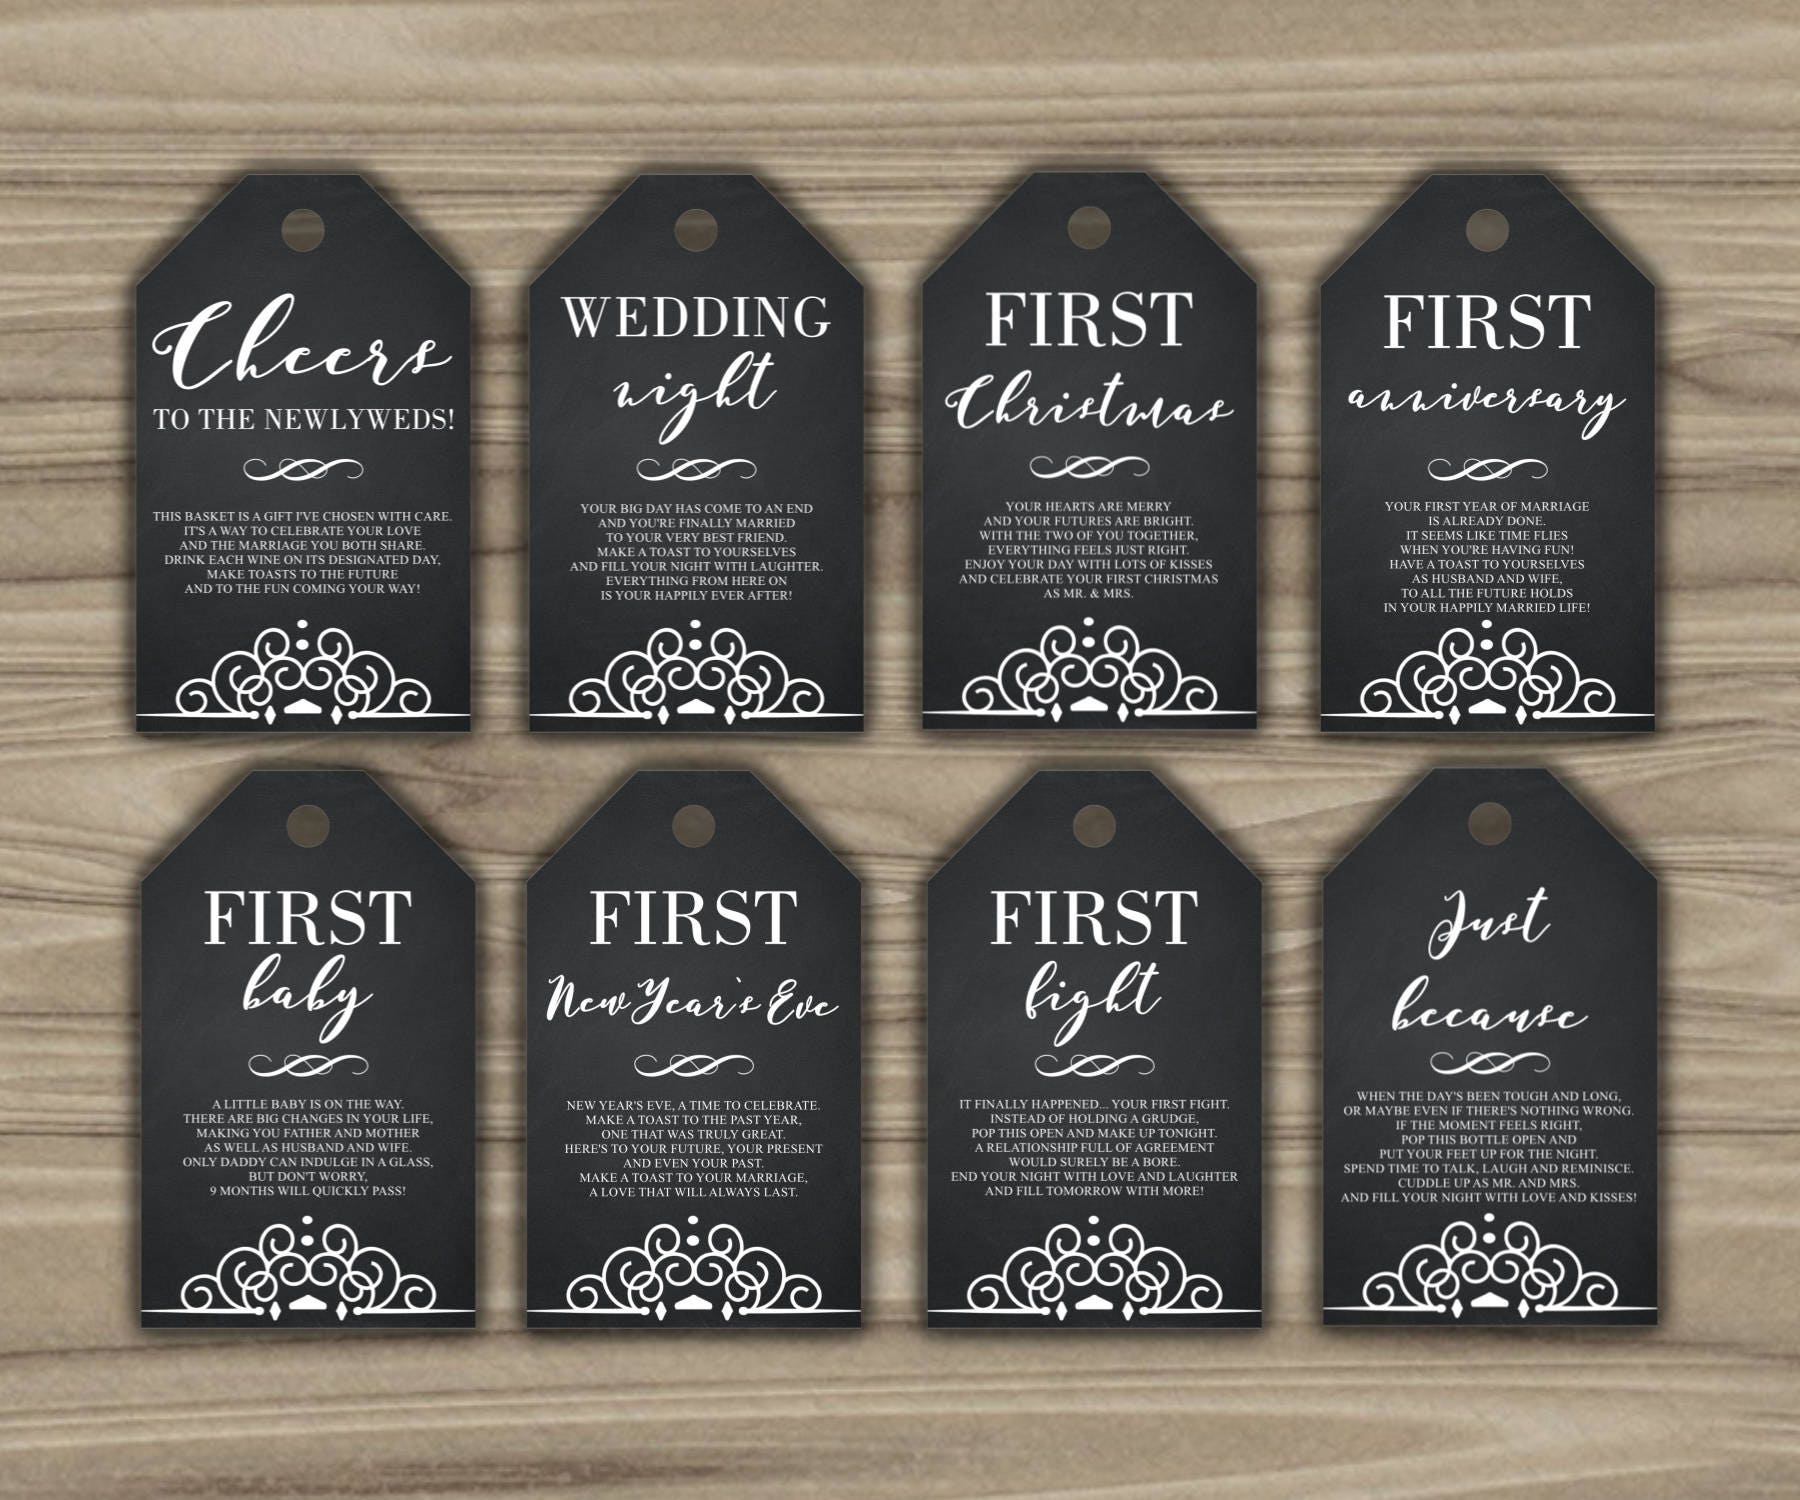 Wedding Milestone Wine Labels A Year Of Firsts Wine: Milestone Wine Tags Bridal Shower Gift Basket Tags First